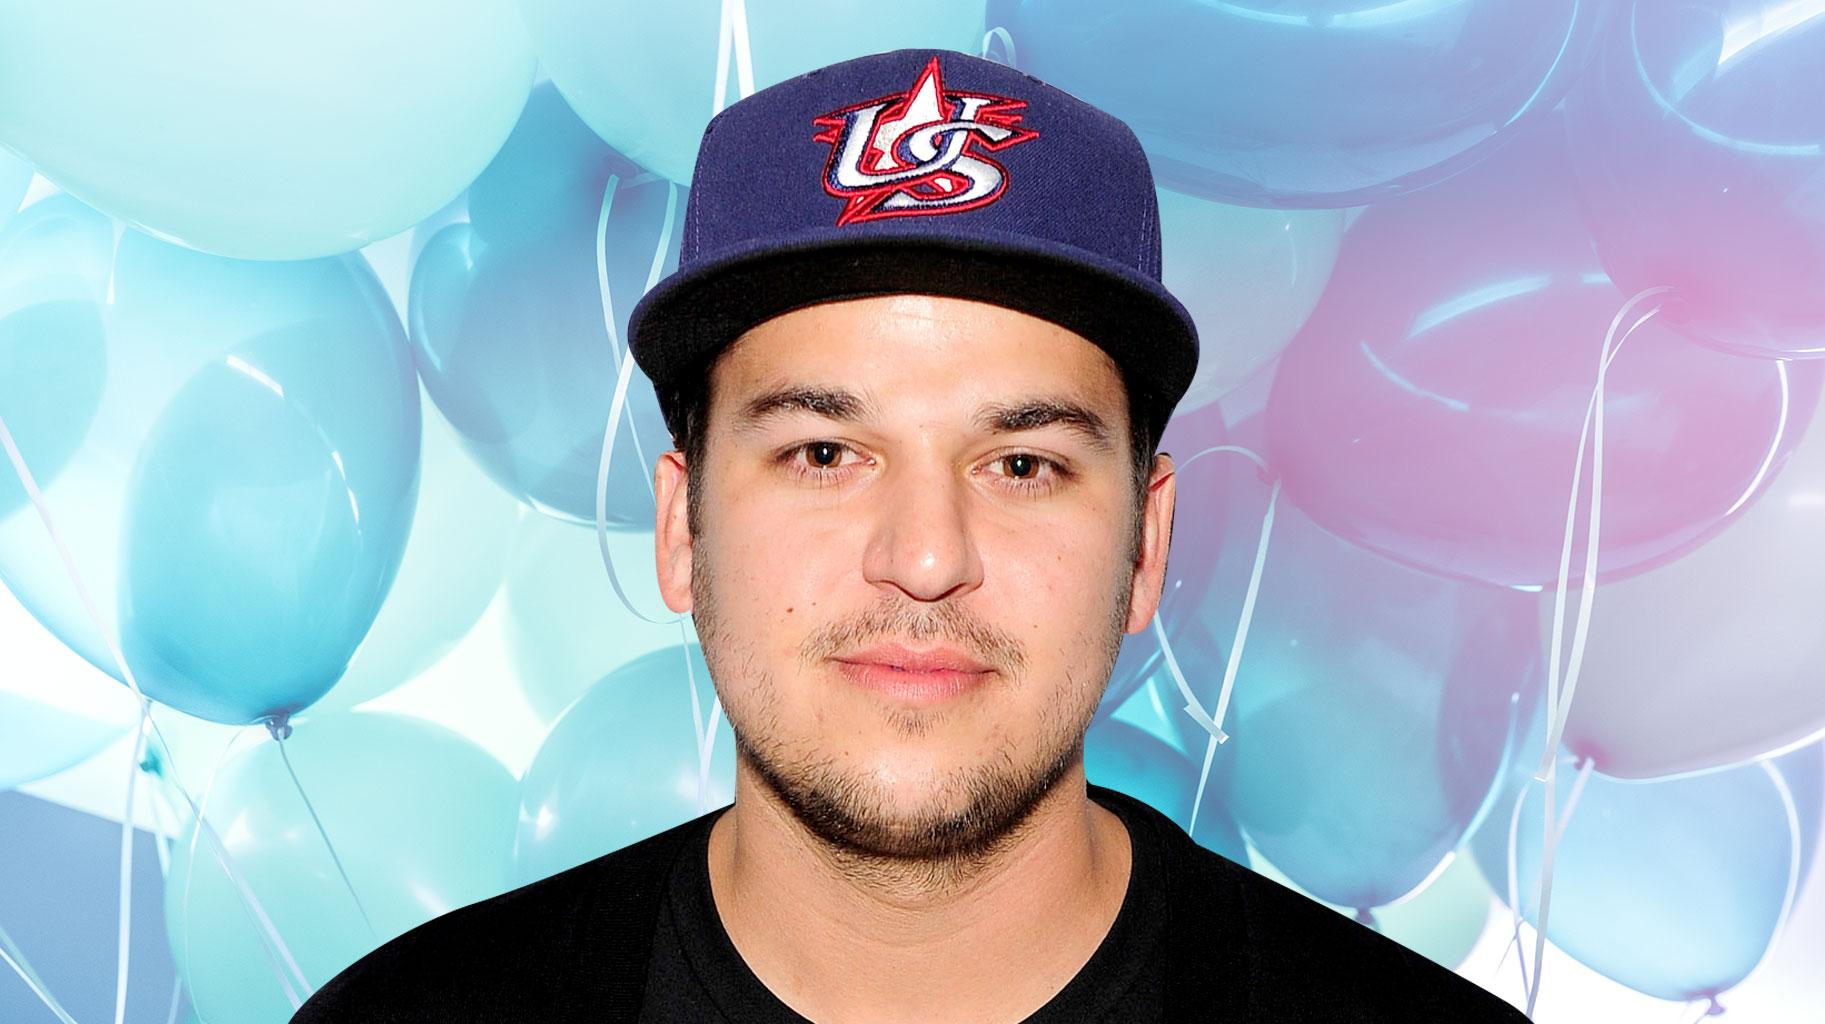 KUWTK: Rob Kardashian Looks Dramatically Thinner In New Shirtless Pic!